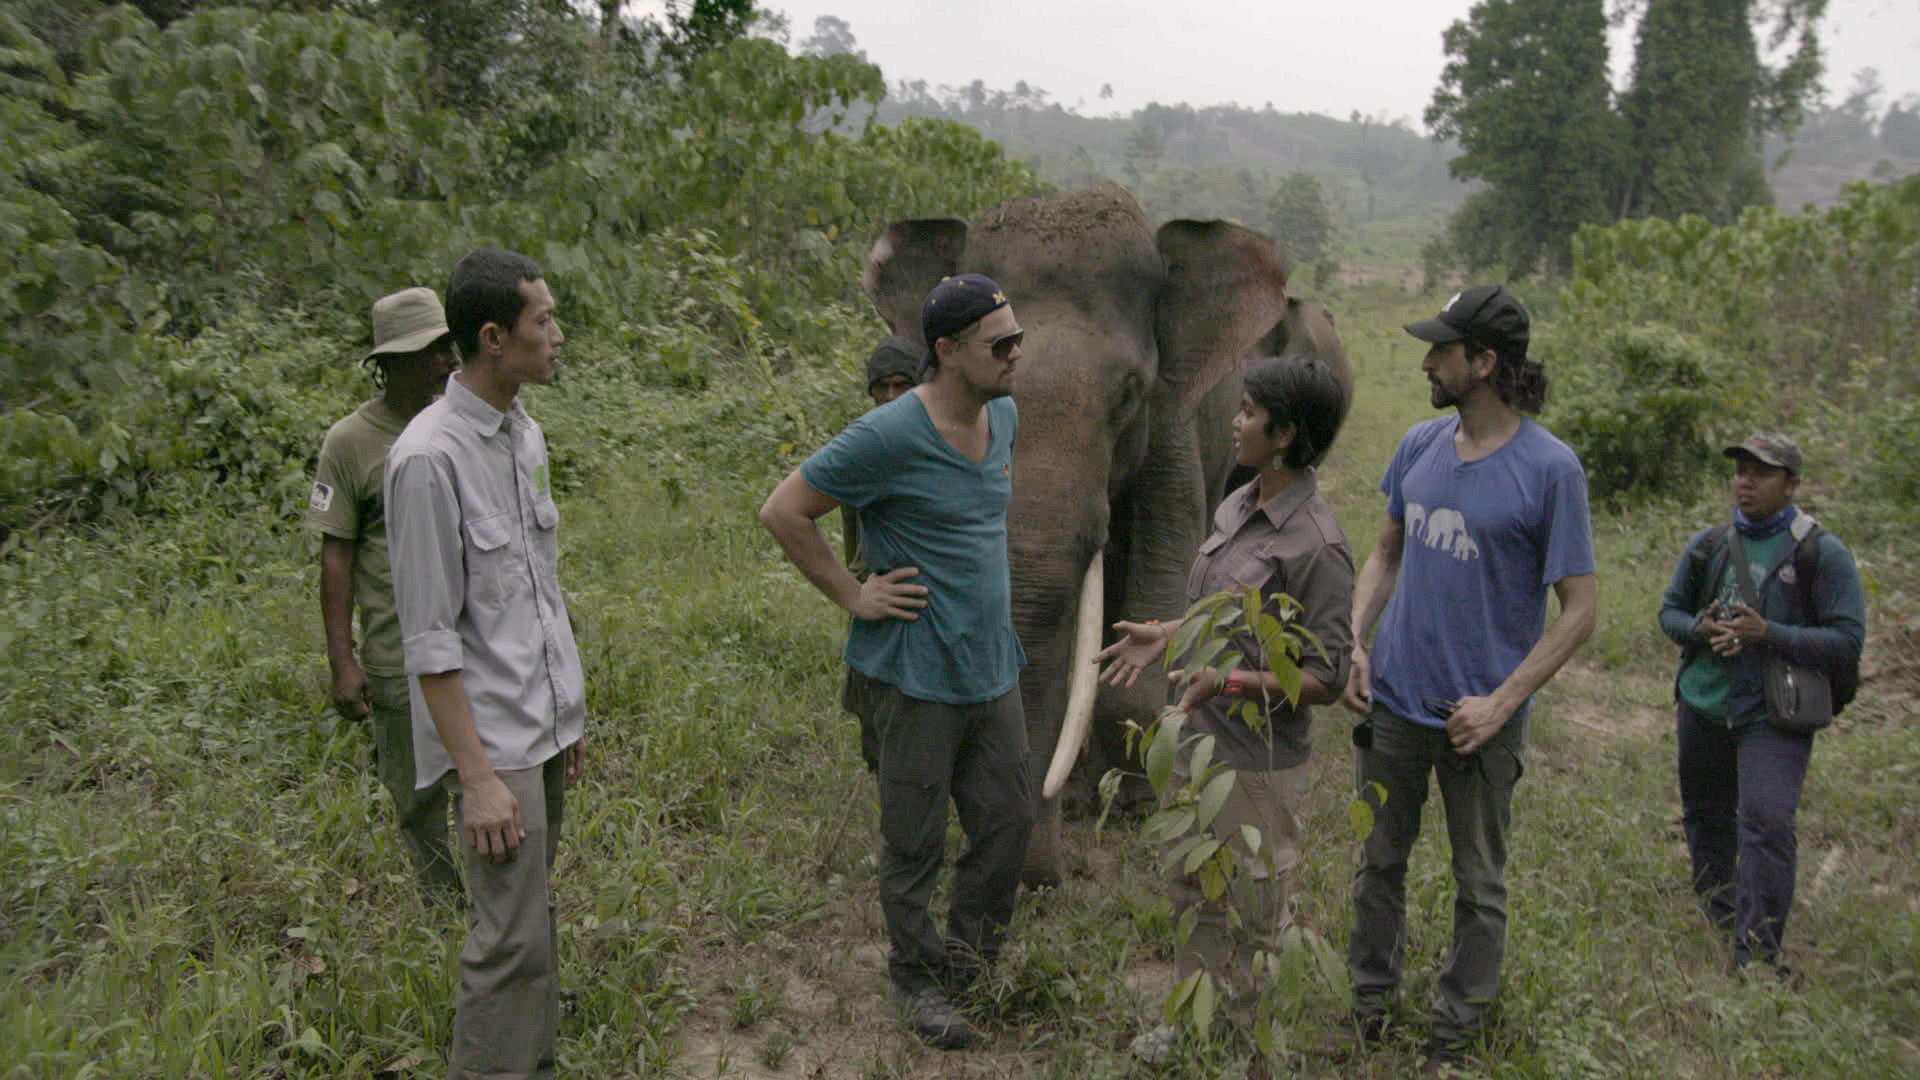 INDONESIA- Leonardo with Farwiza Farhan and Rudi Putra in the Leuser Ecosystem. For two years, Leonardo DiCaprio has criss-crossed the planet in his role as UN messenger of Peace on Climate Change. This film, executive produced by Brett Ratner and Martin Scorsese, follows that journey to find both the crisis points and the solutions to this existential threat to human species. © 2016 RatPac Documentary Films, LLC and Greenhour Corporation, Inc. All rights reserved.